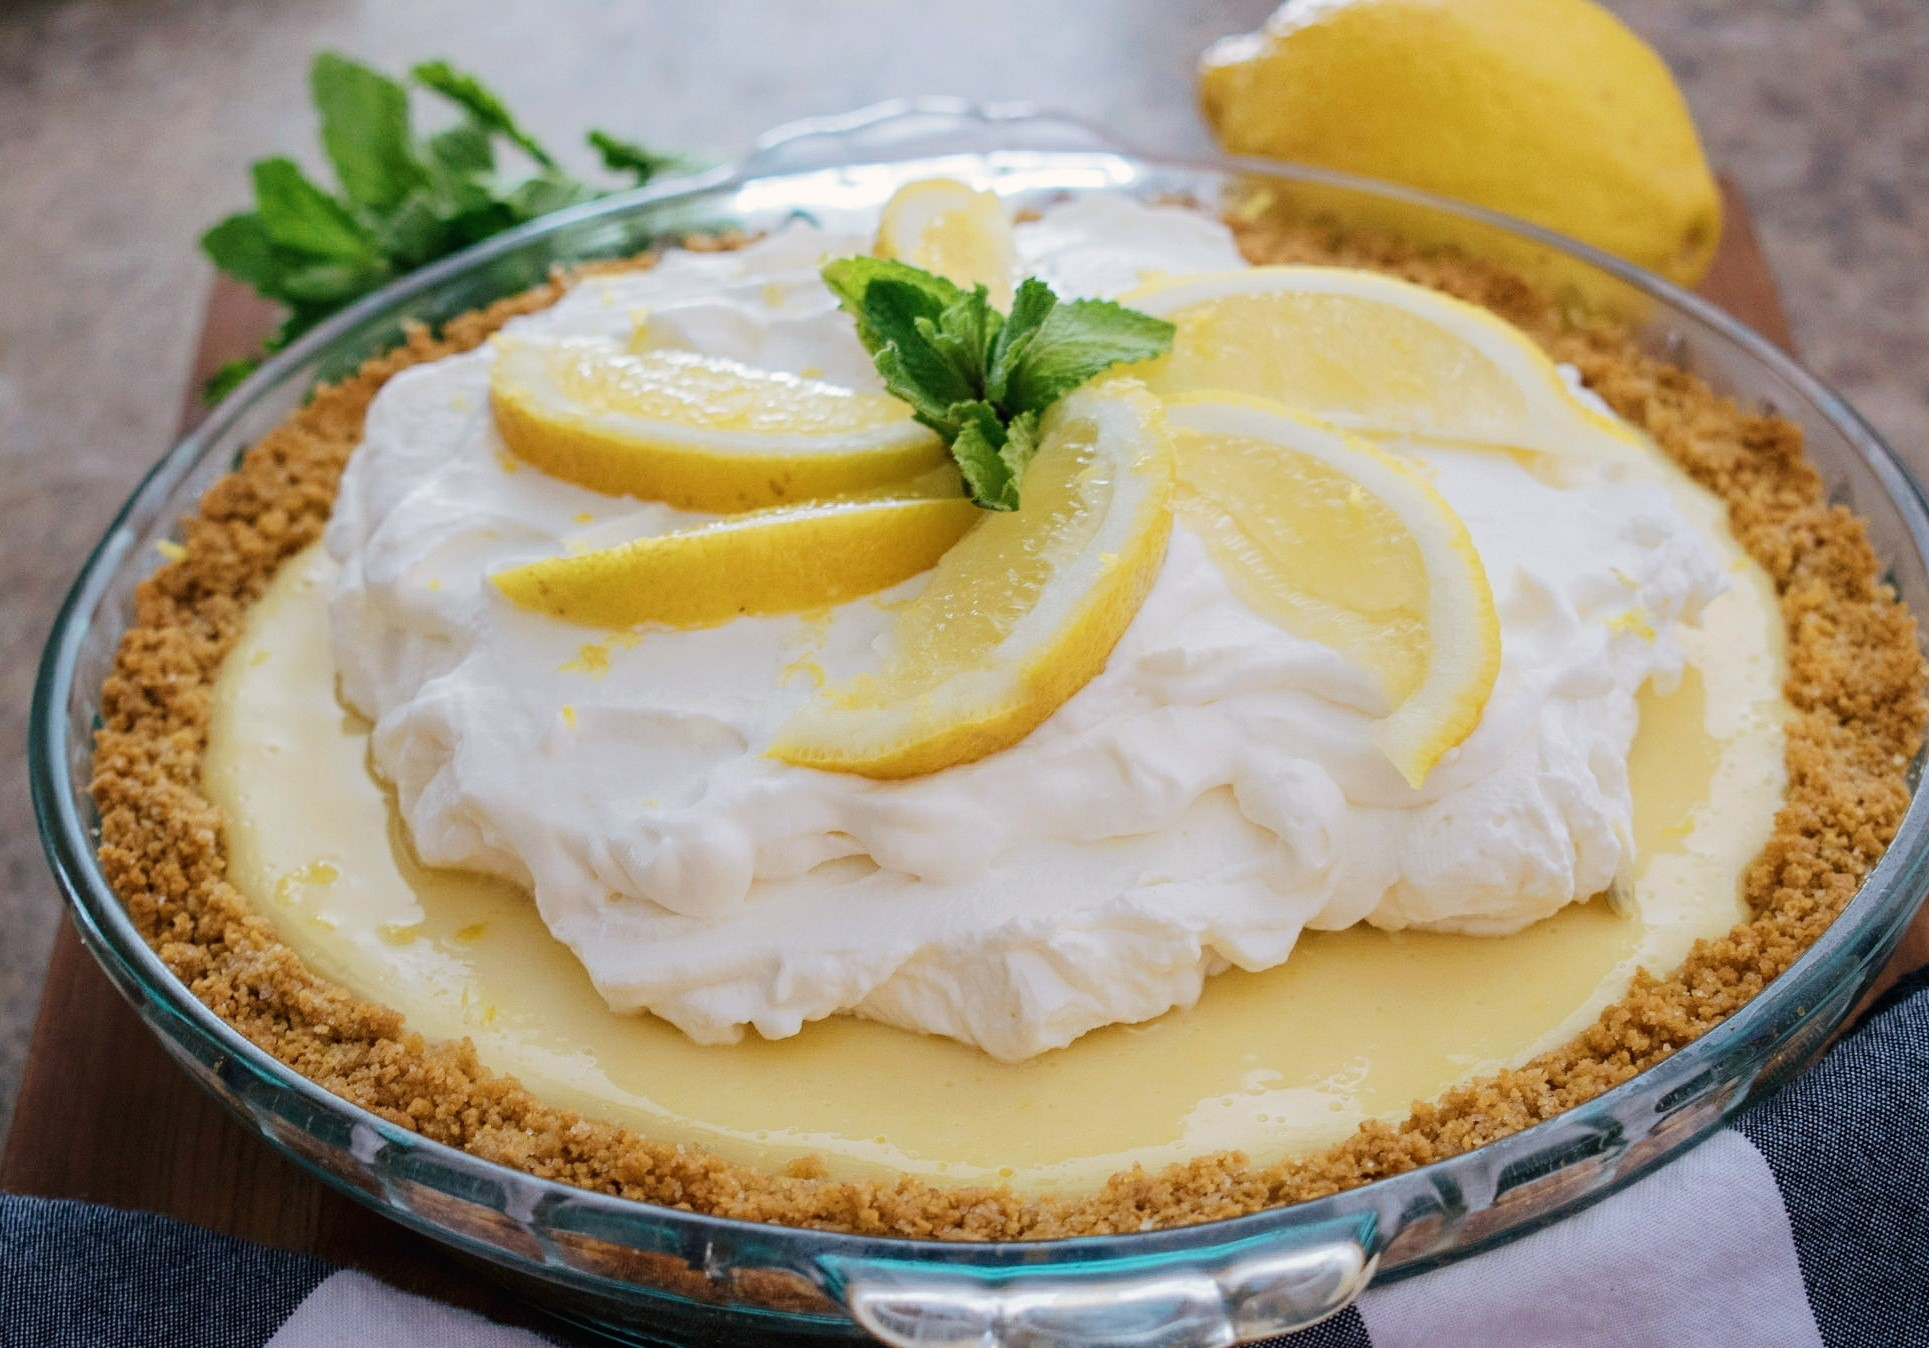 Lemon pie with graham cracker crust, whip cream topping, sliced lemon wedges and mint leaves as garnish